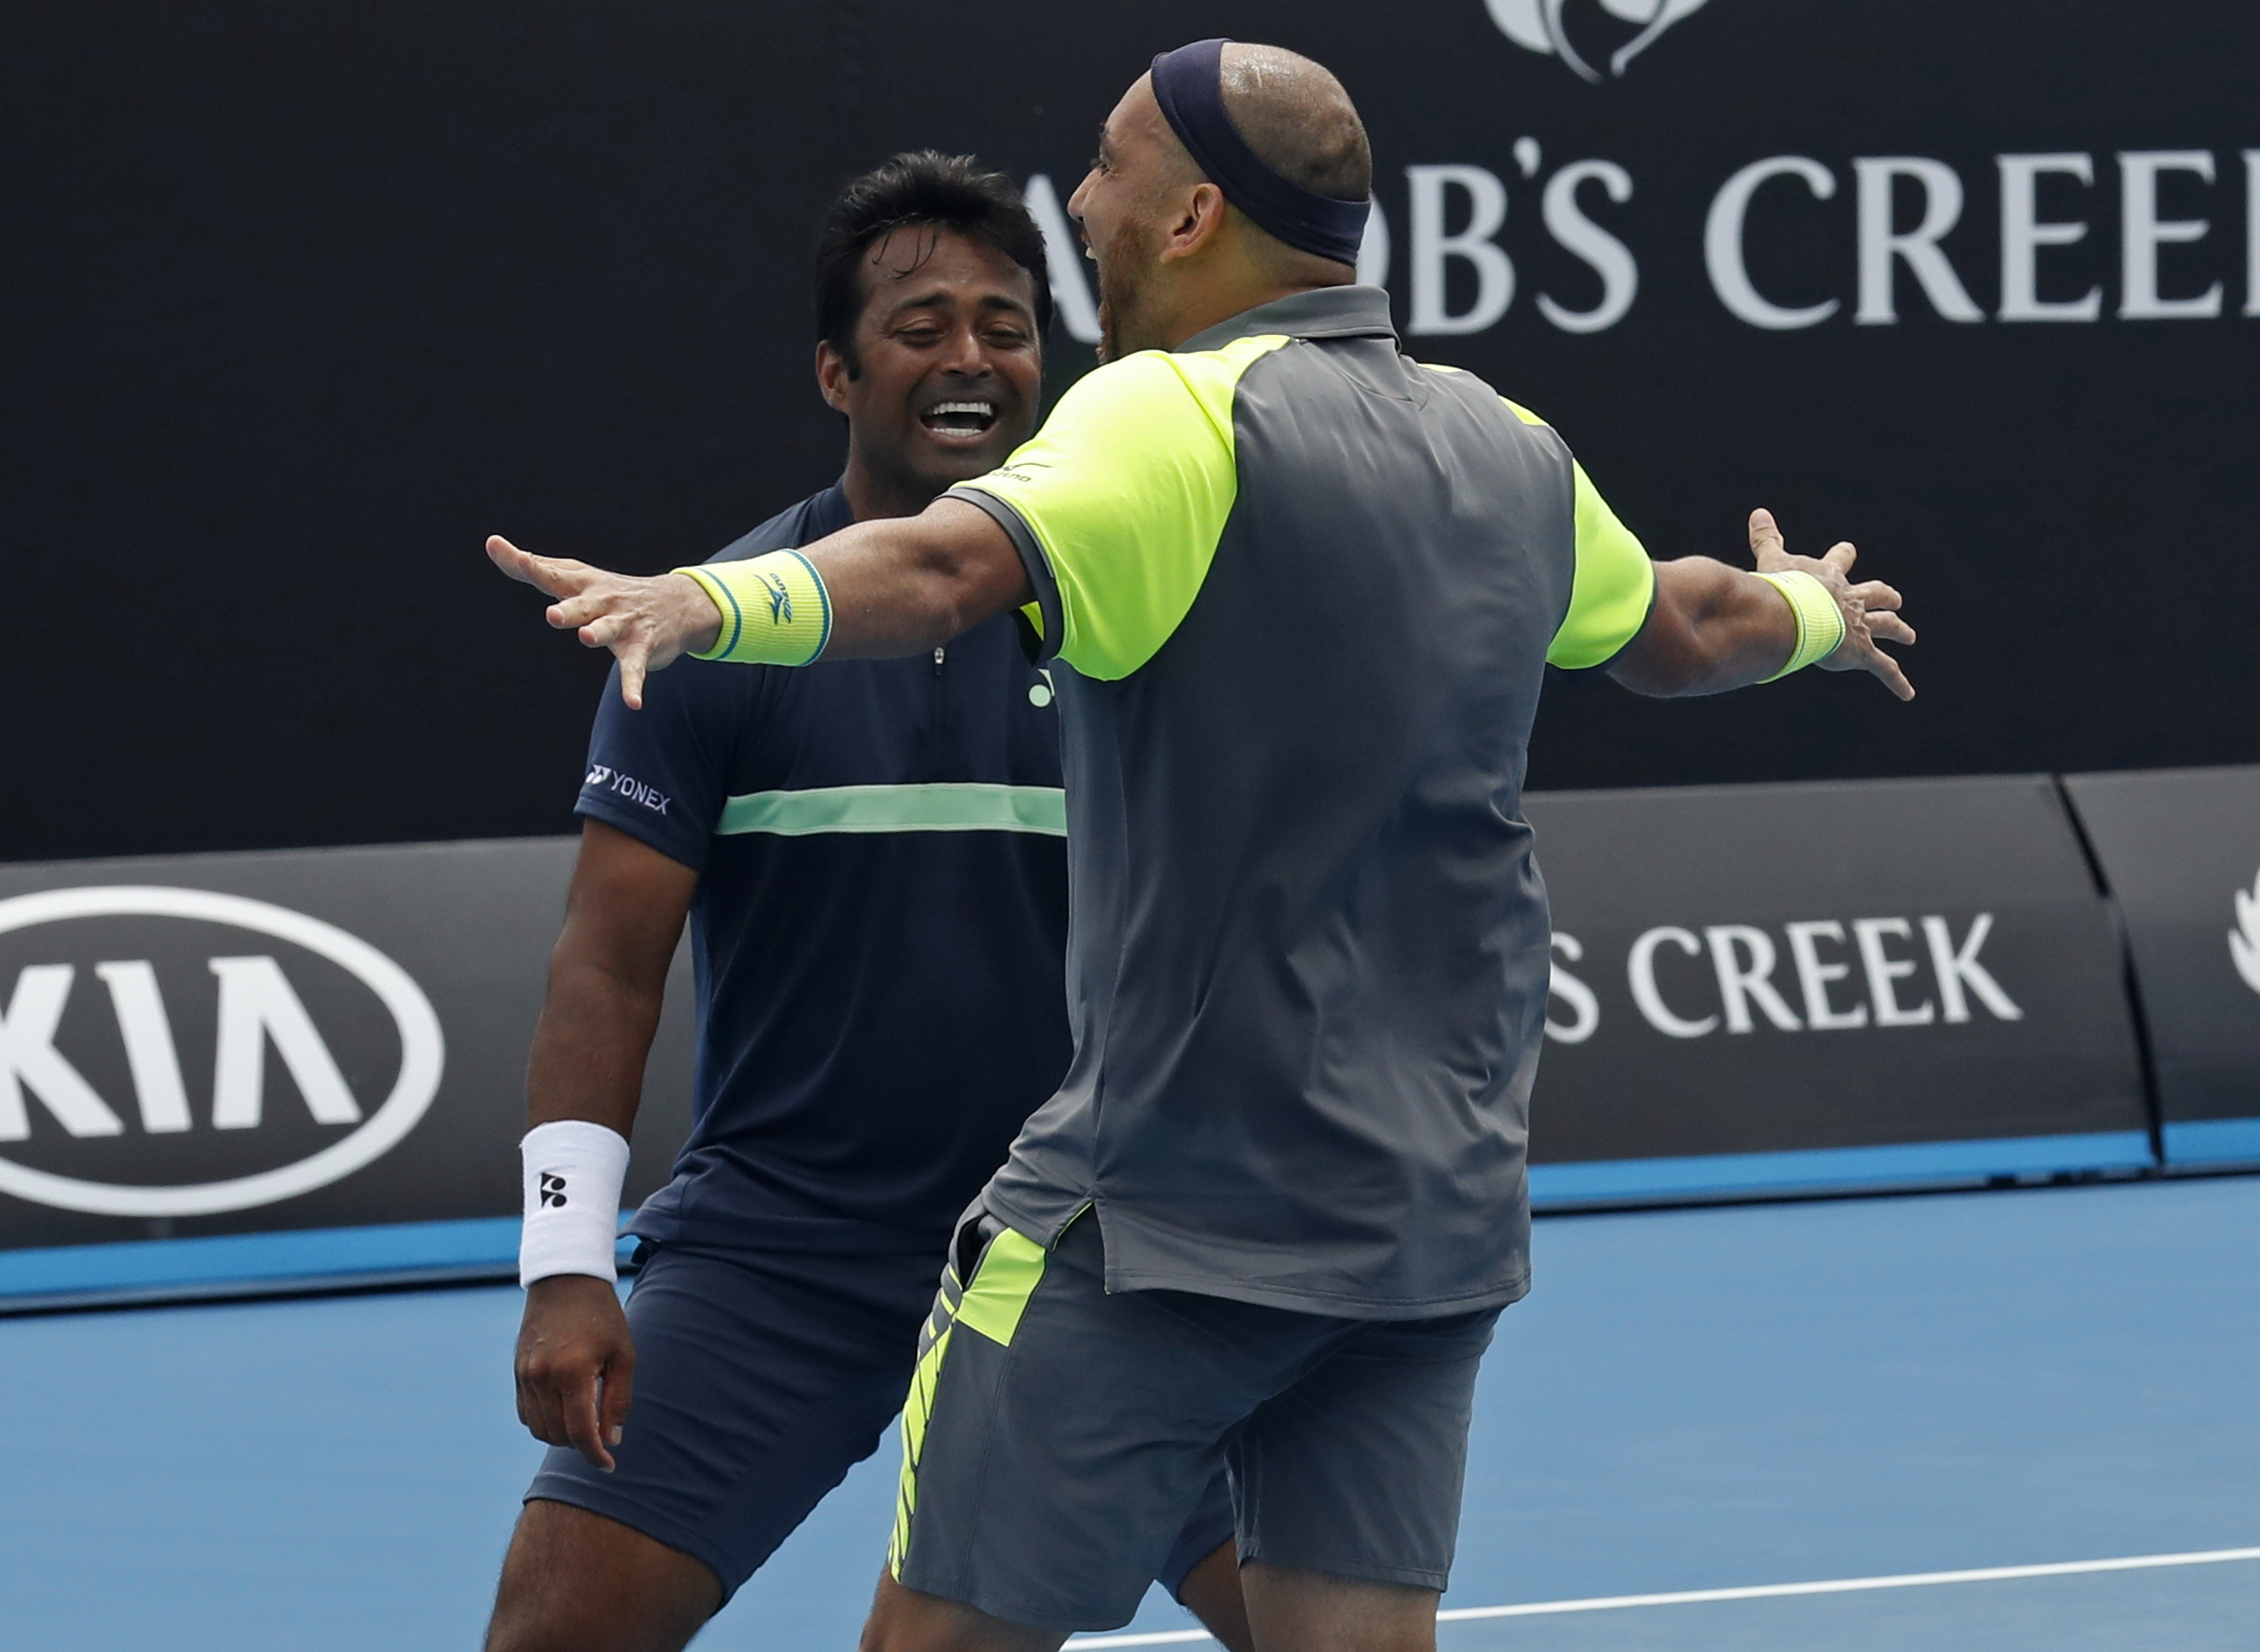 Leander Paes-Purav Raja Advance to Pre-Quarters at 2018 Australian Open